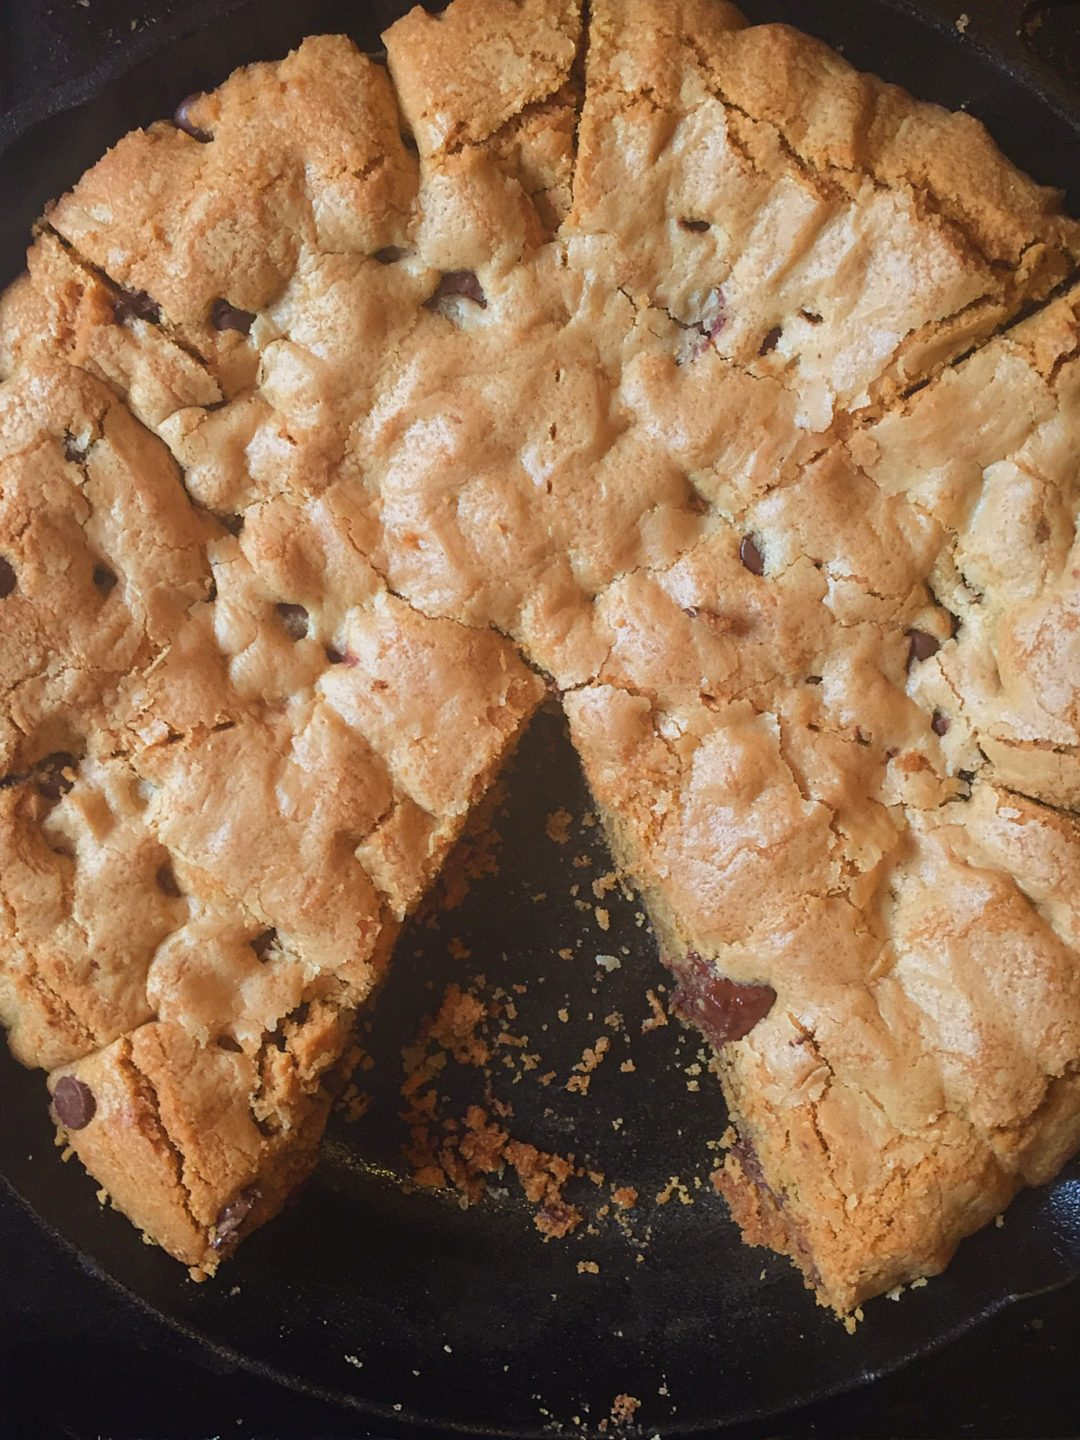 Skillet Chocolate Chip Cookie - Jem of the South